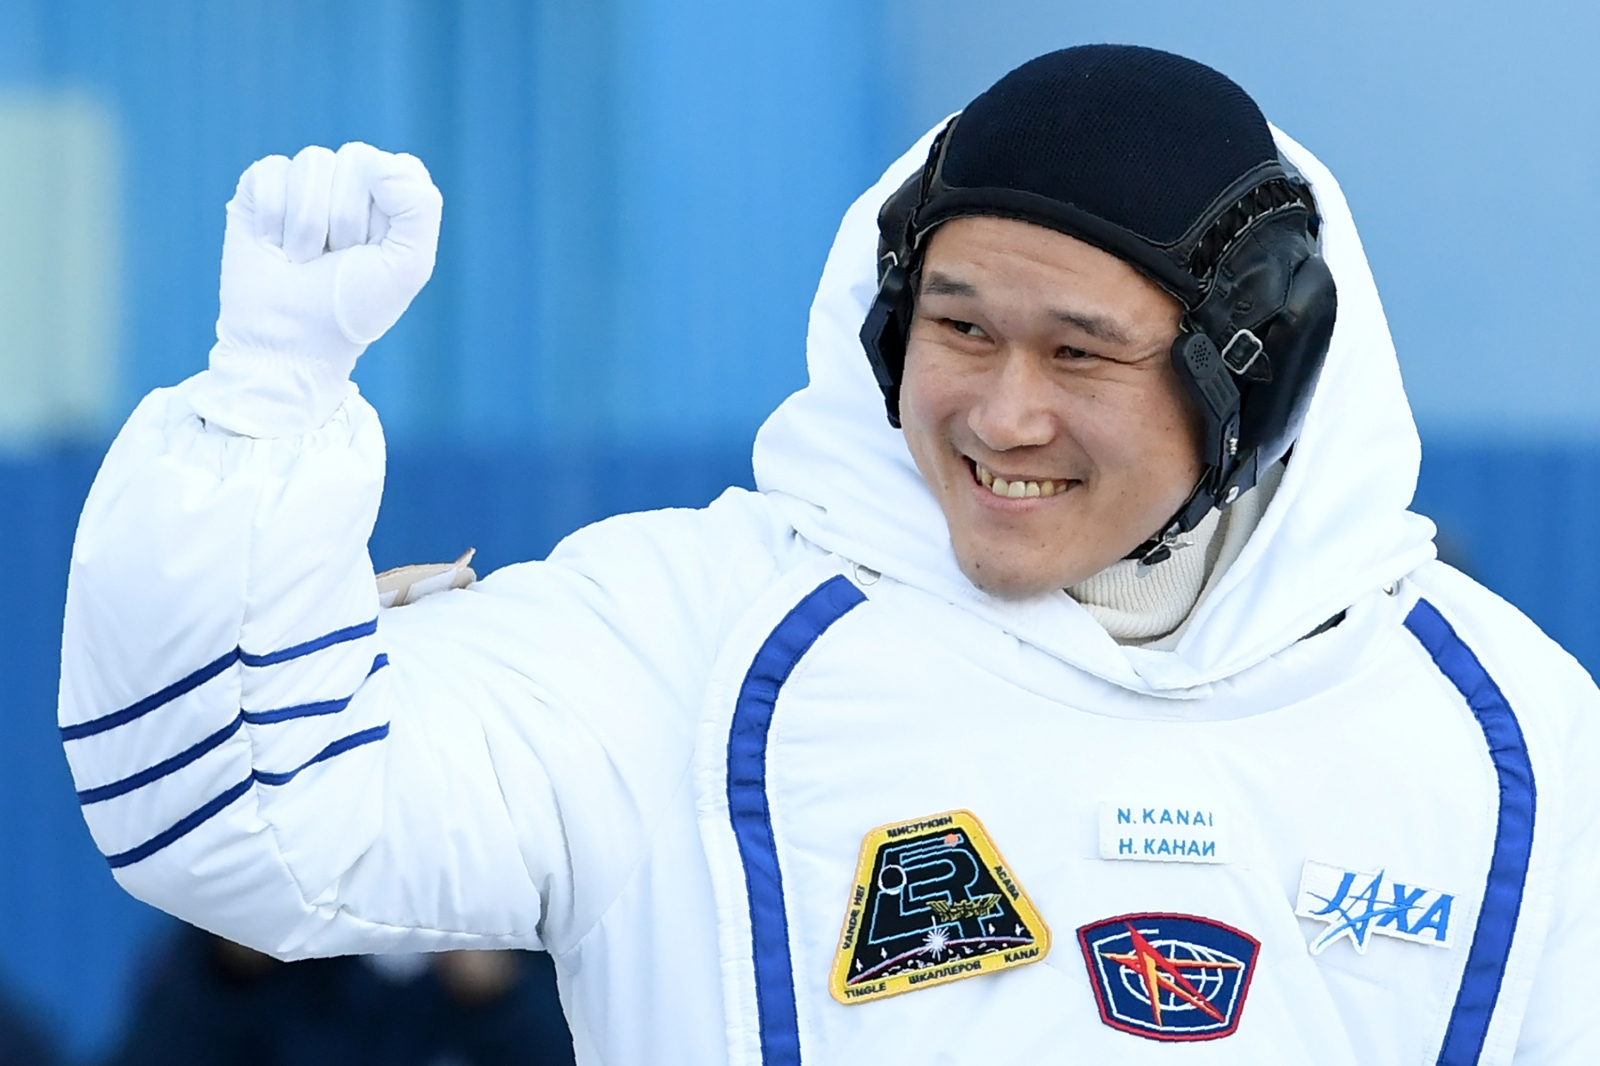 Astronomical oops: Japanese astronaut didn't grow nine centimetres after all